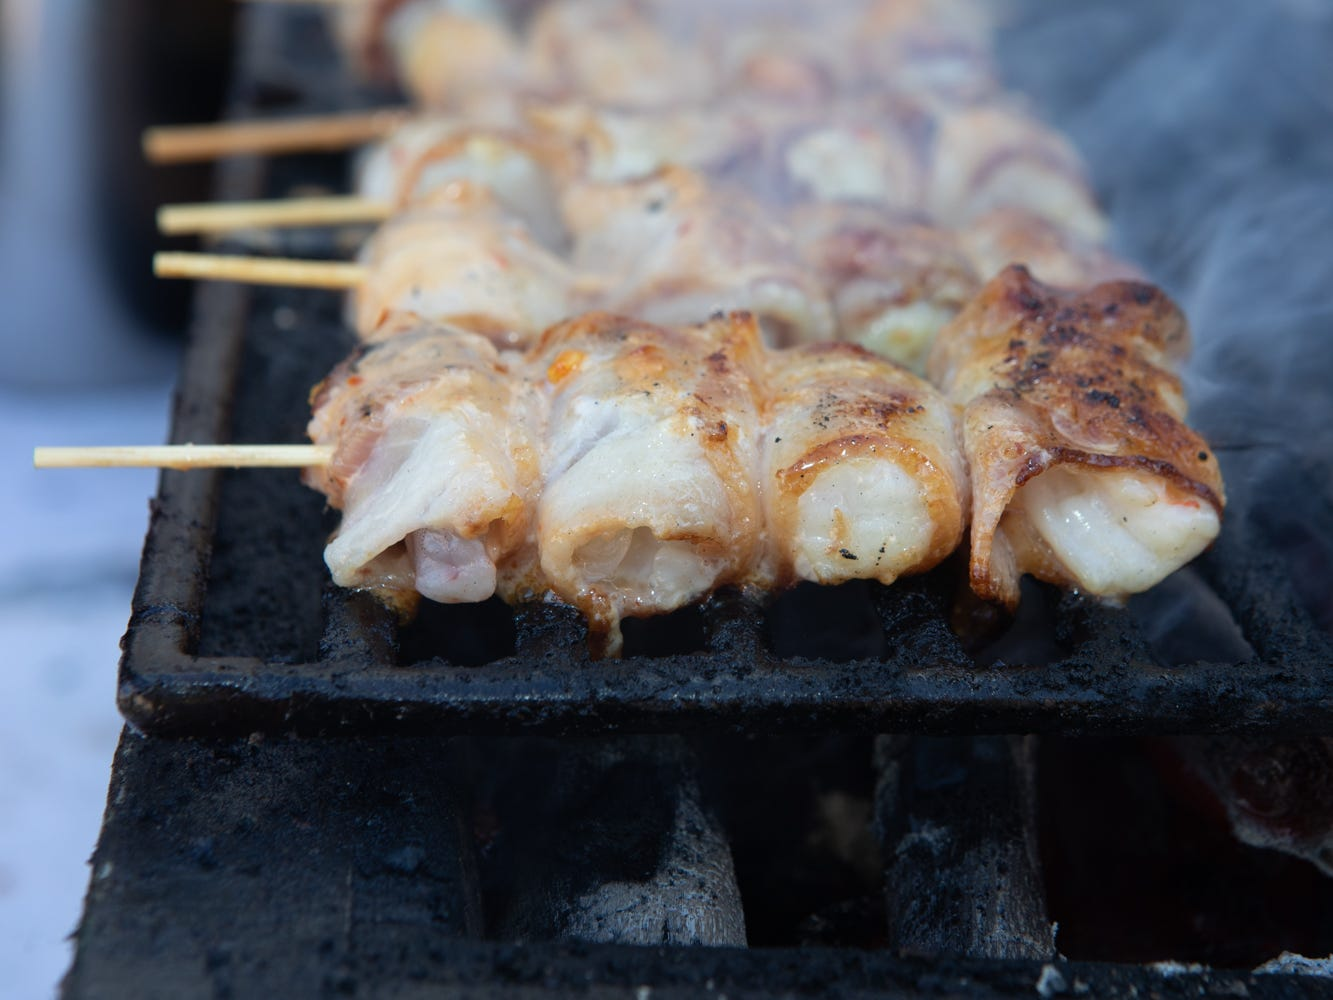 Bacon-wrapped shrimp skewers by Sushi Roku on the grill at the Scottsdale Culinary Festival on April 13, 2019.